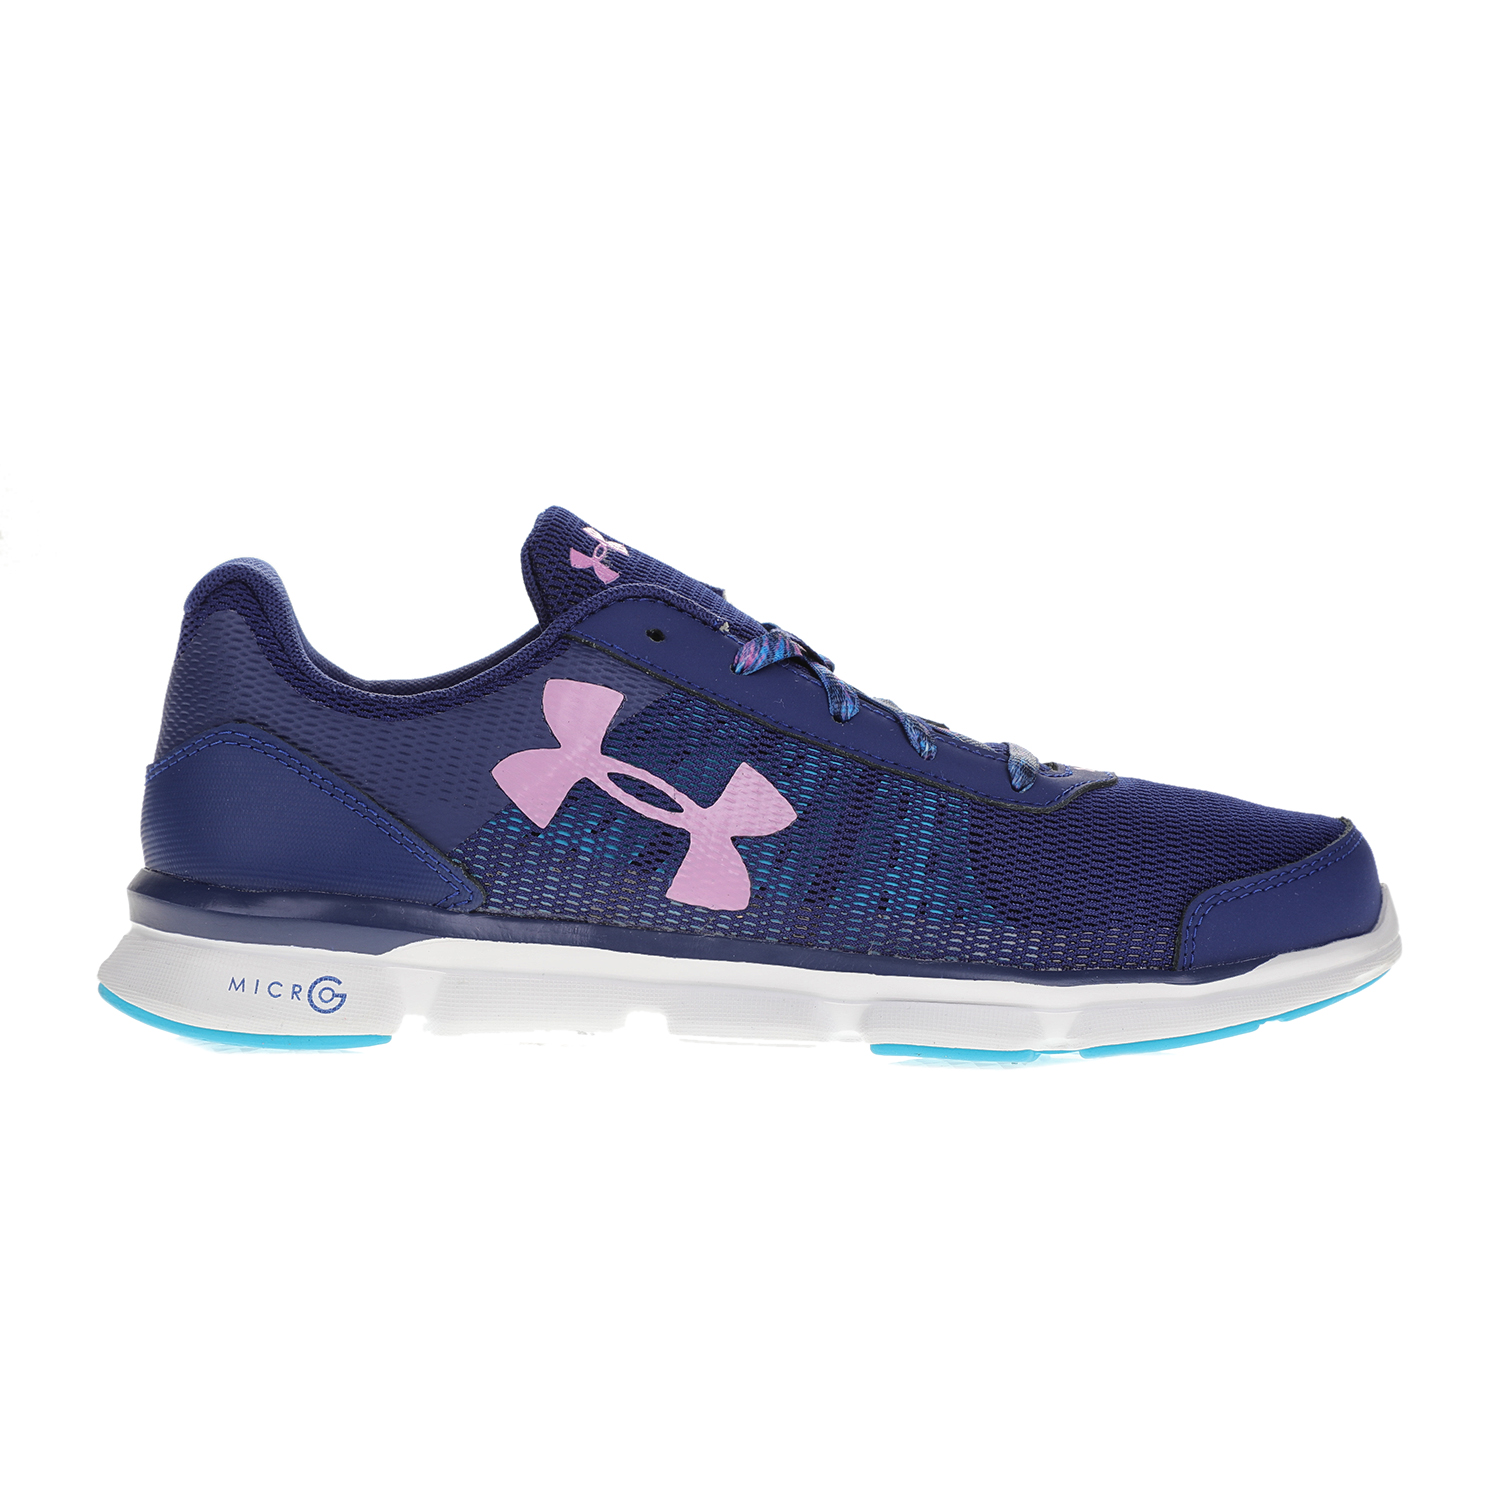 UNDER ARMOUR – Παιδικά αθλητικά παπούτσια UNDER ARMOUR GGS MICRO G SPEED S μπλε